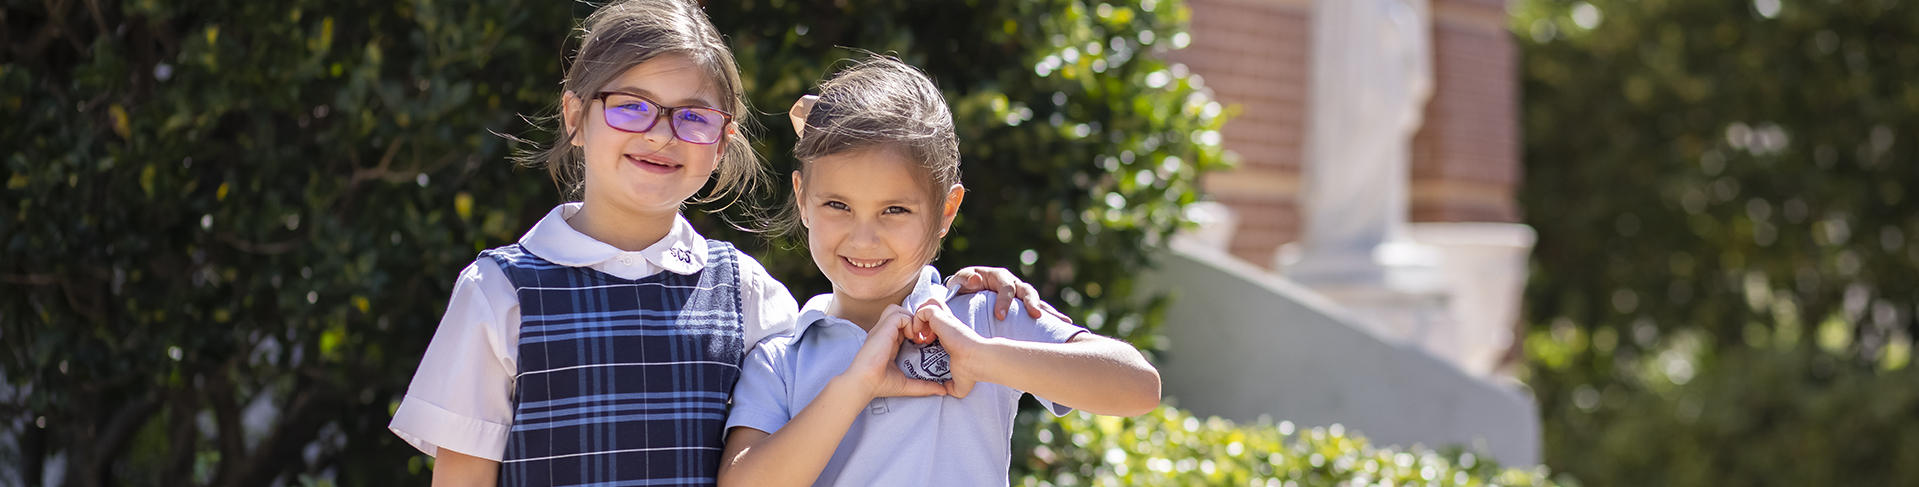 two young female girls in blue checked uniforms with white shirts smiling at the camera